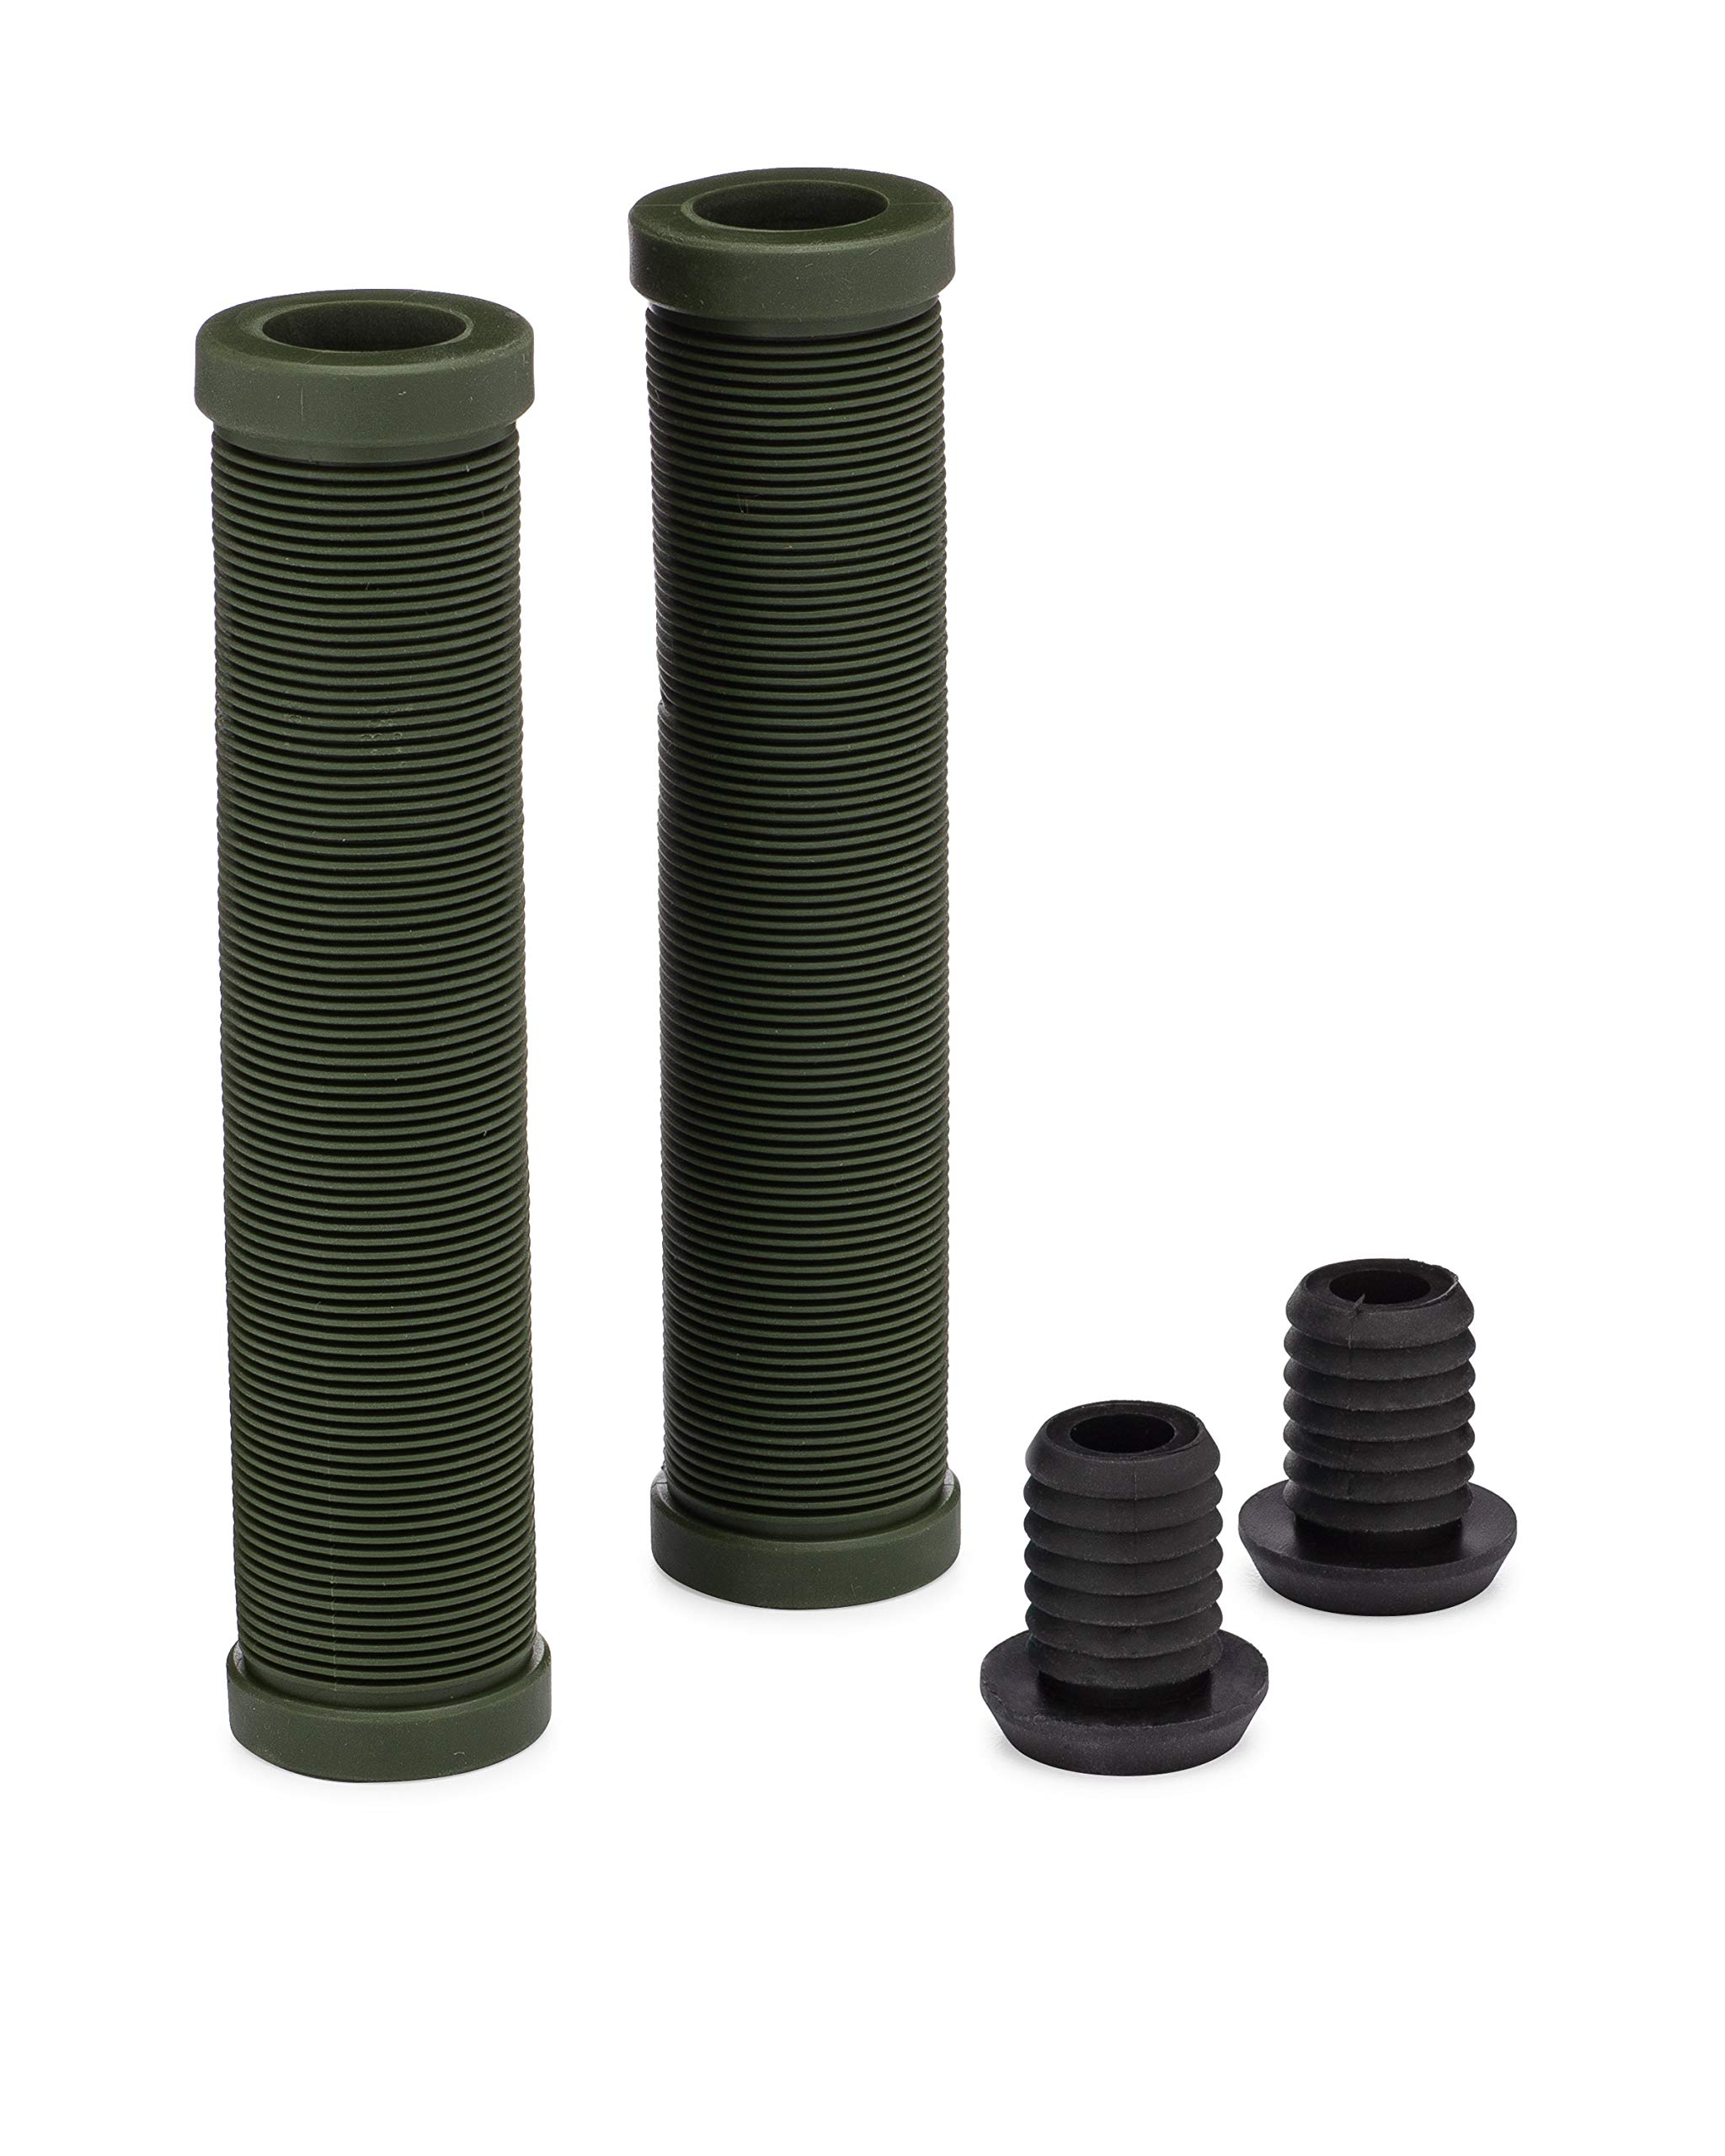 25Nine Ronin Grip Without Flange Flangeless BMX Bike and Scooter Handlebar Grips with End Plugs